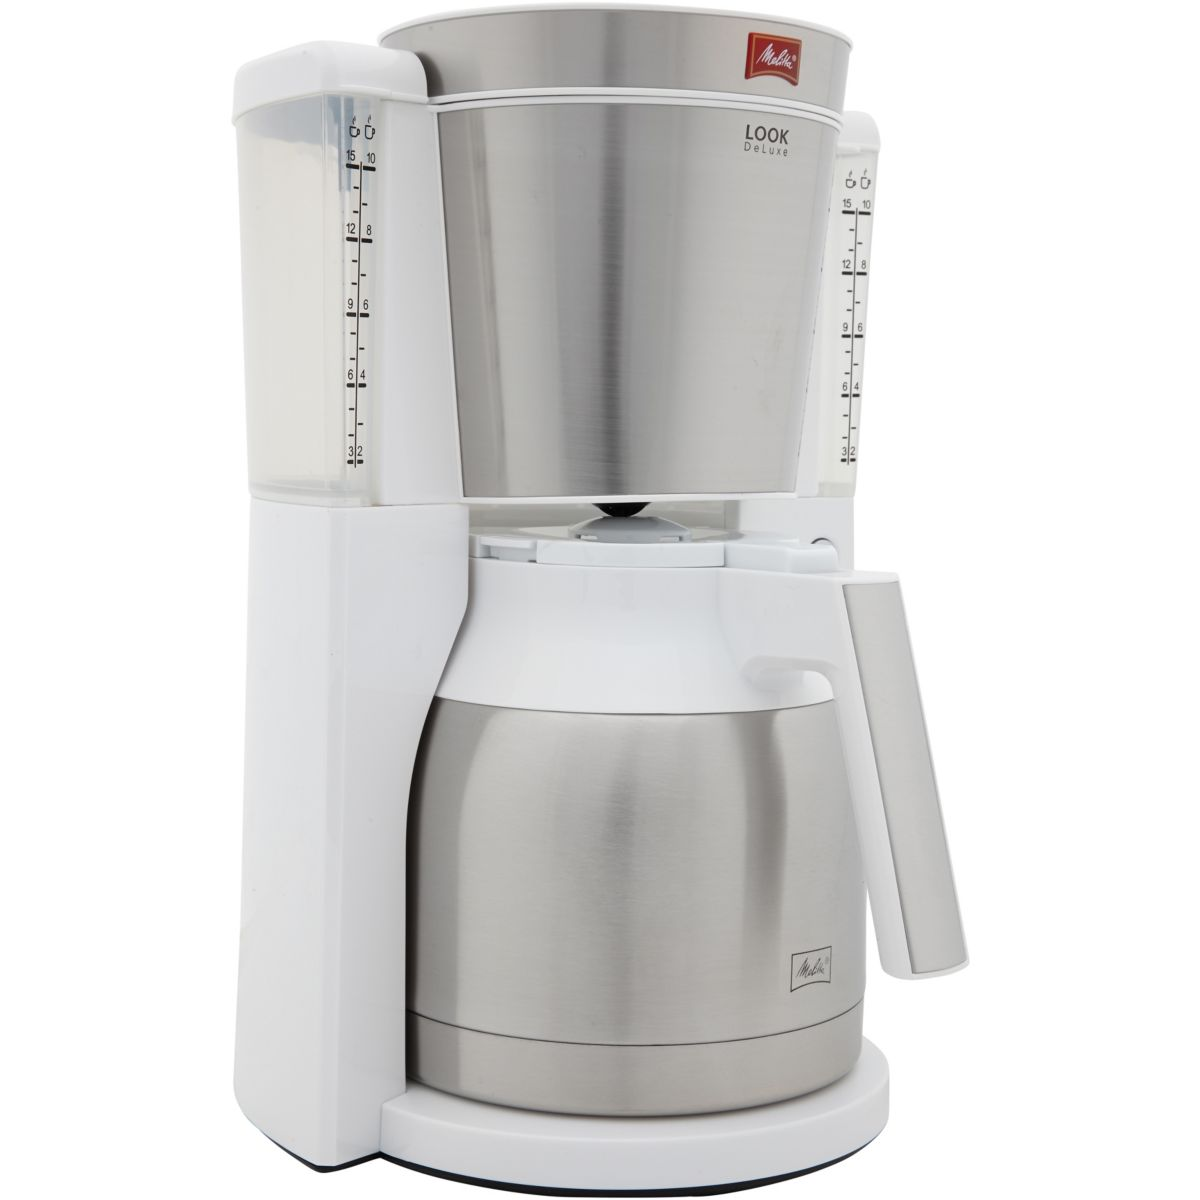 Caf-Thermos MELITTA Look IV therm deluxe (photo)